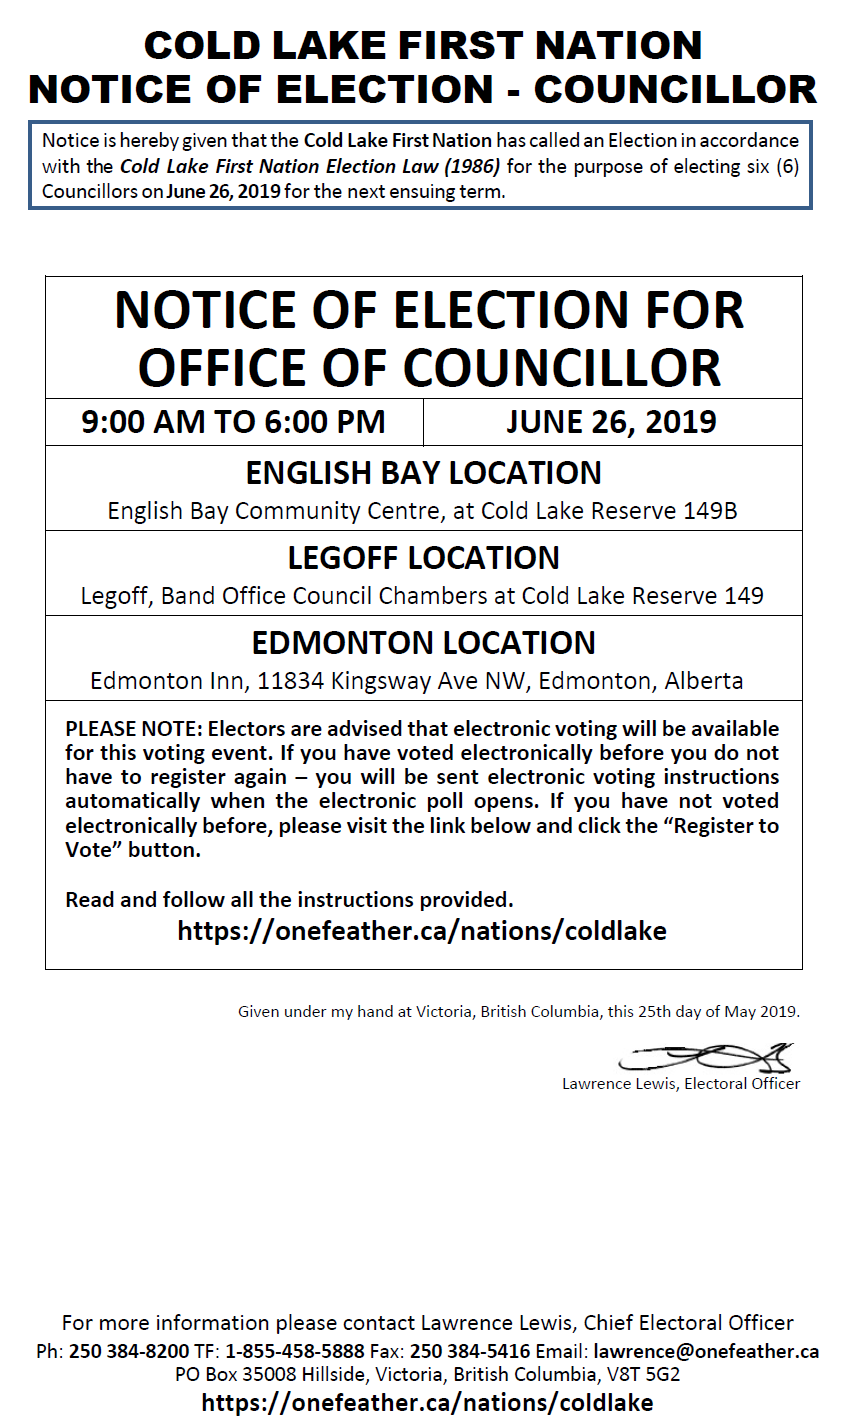 Cold Lake First Nations - Notice of Nomination and Election